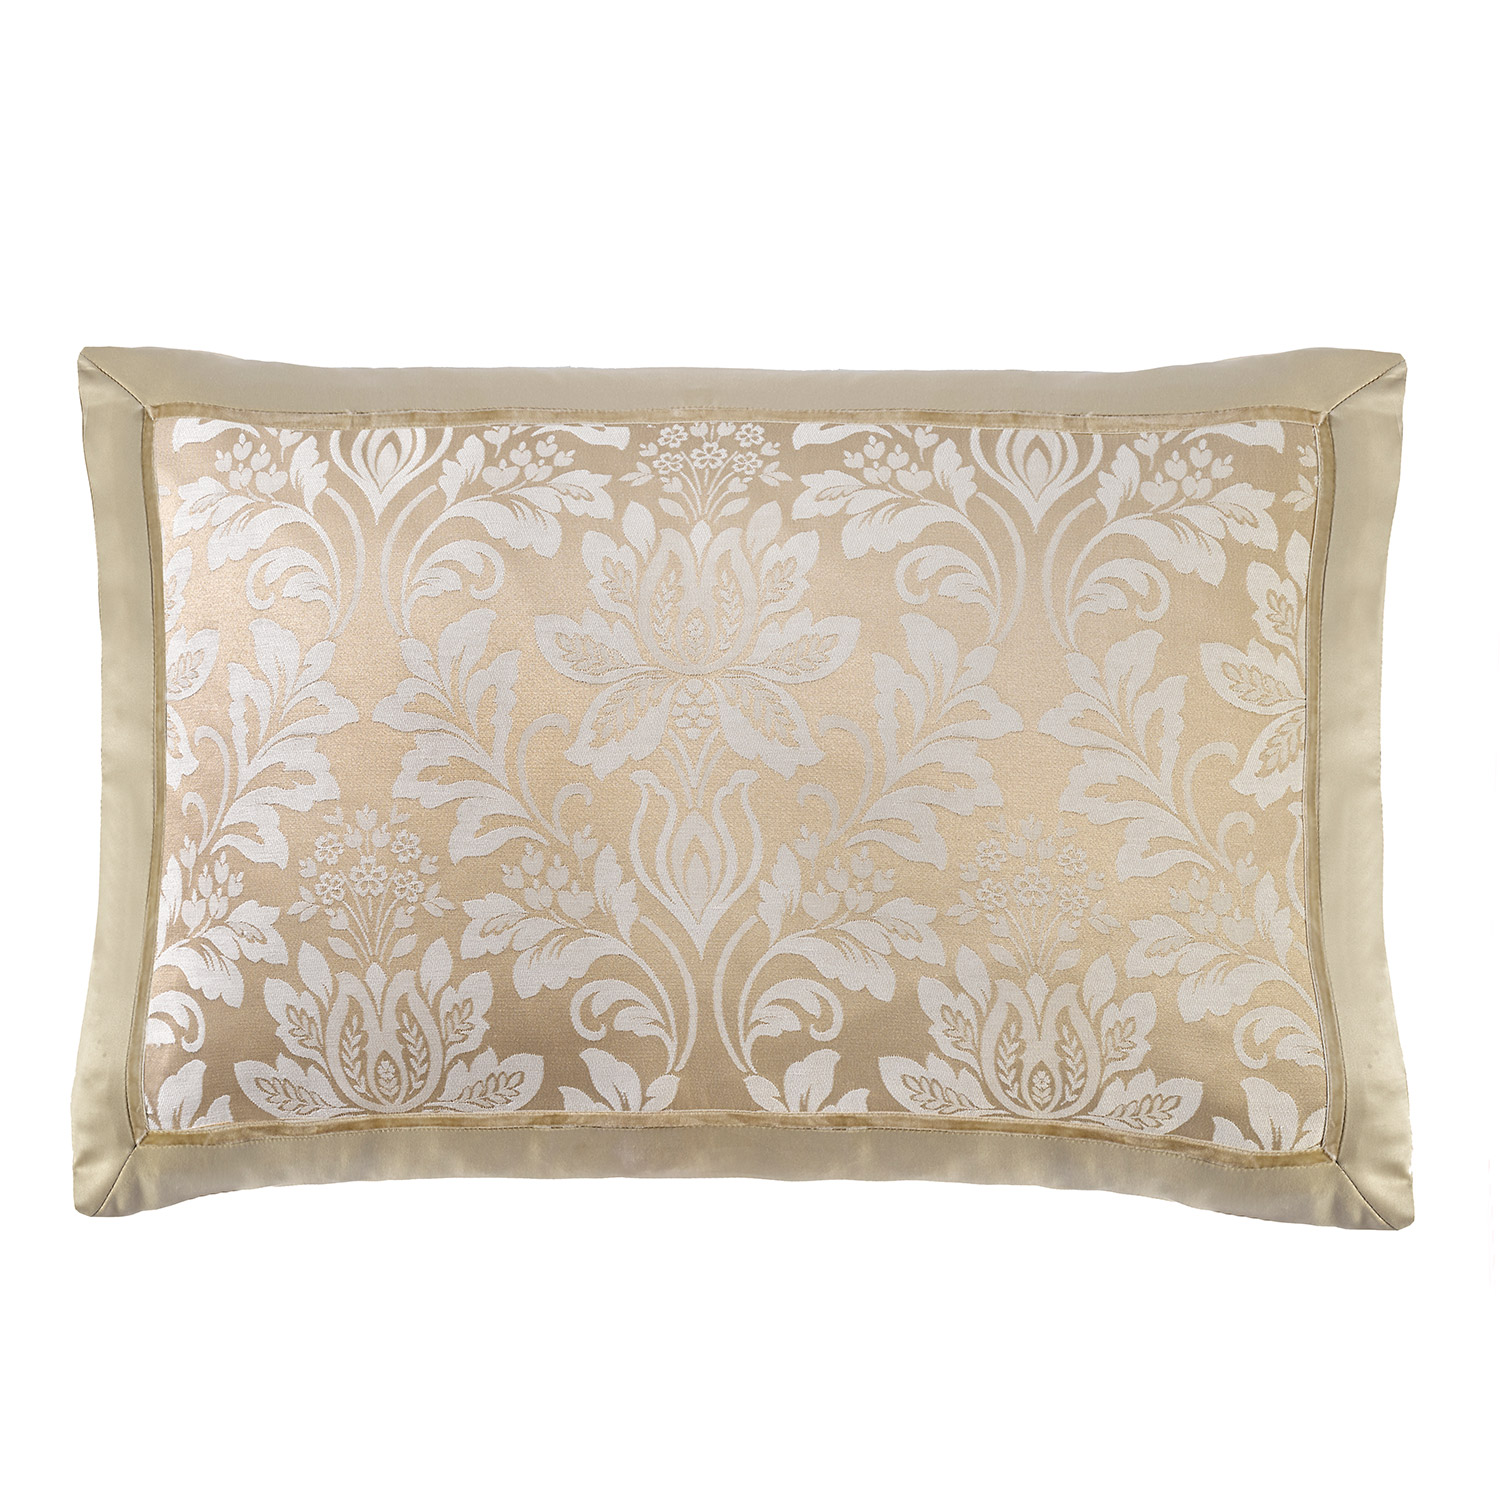 Stockists of Blenheim Gold Luxury Jacquard Housewife Pillow Cases (Pair)